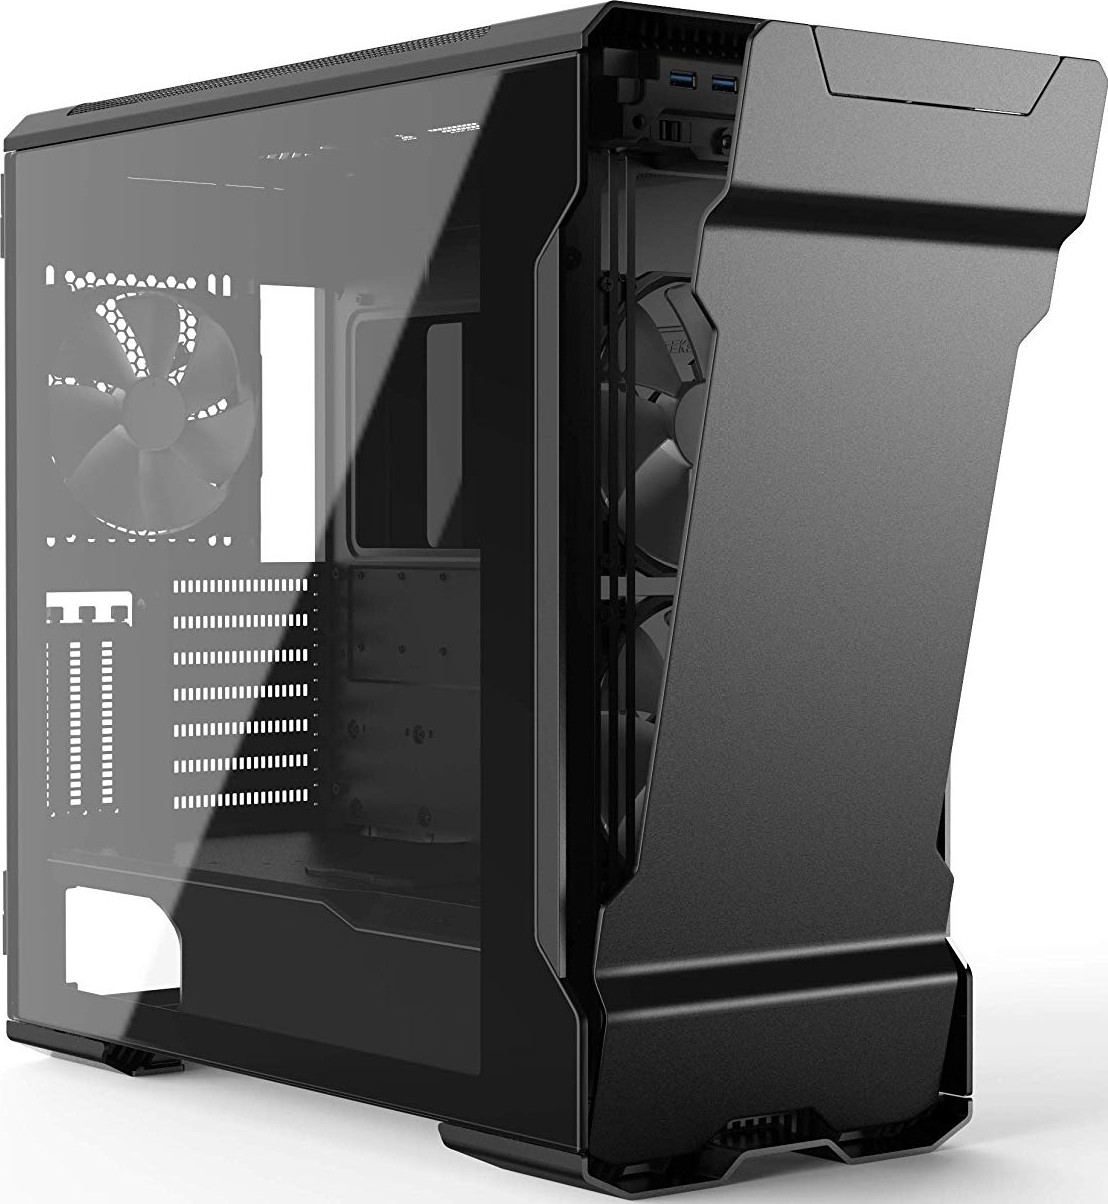 Phanteks Enthoo Evolv X ATX Case Tempered Glass Windows Digital RGB Satin  Black Color | PH-ES518XTG_DBK01